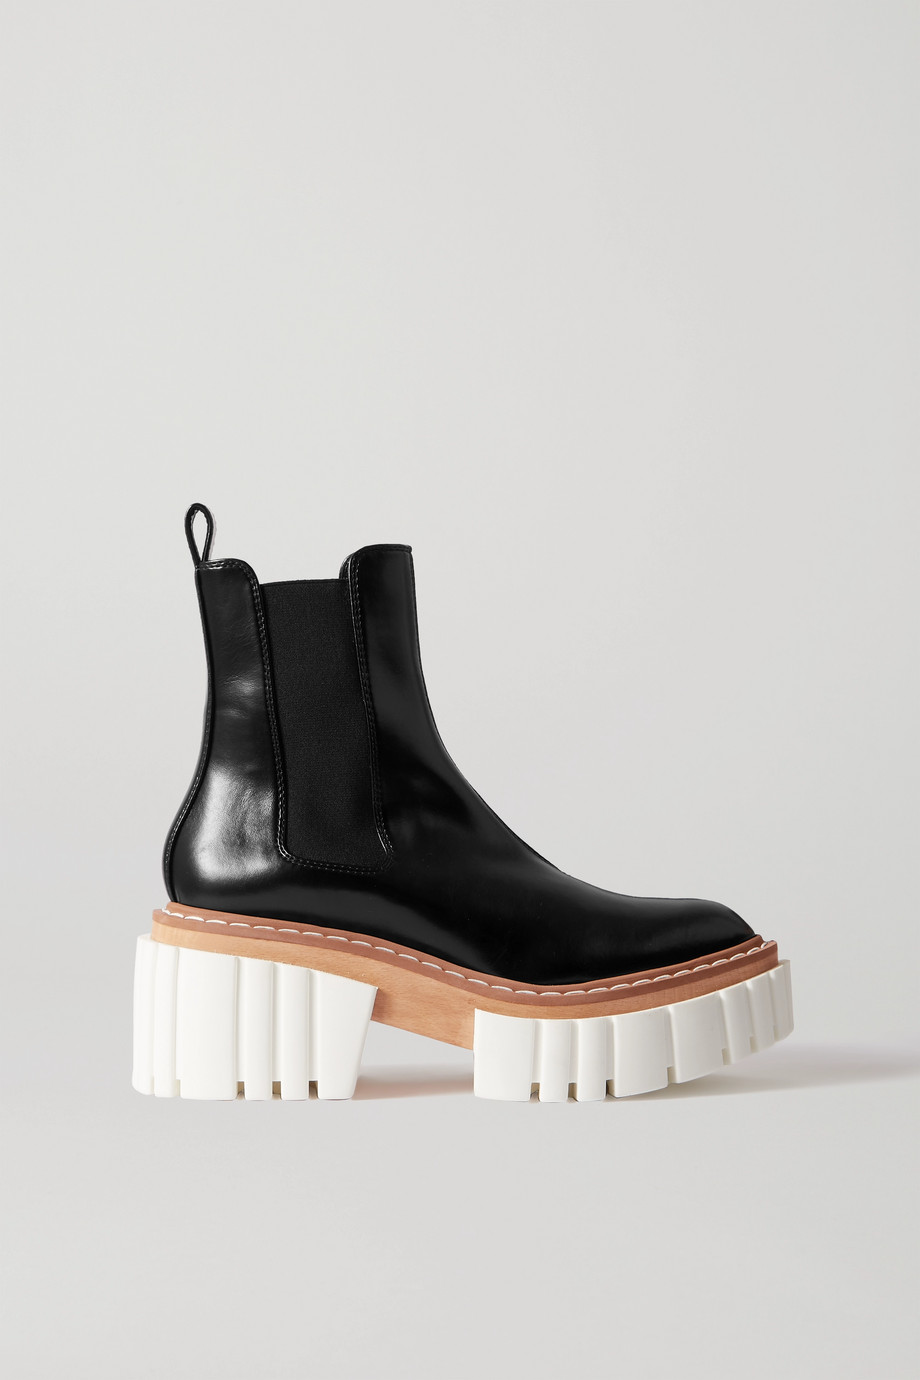 Stella McCartney Emilie vegetarian leather platform Chelsea boots